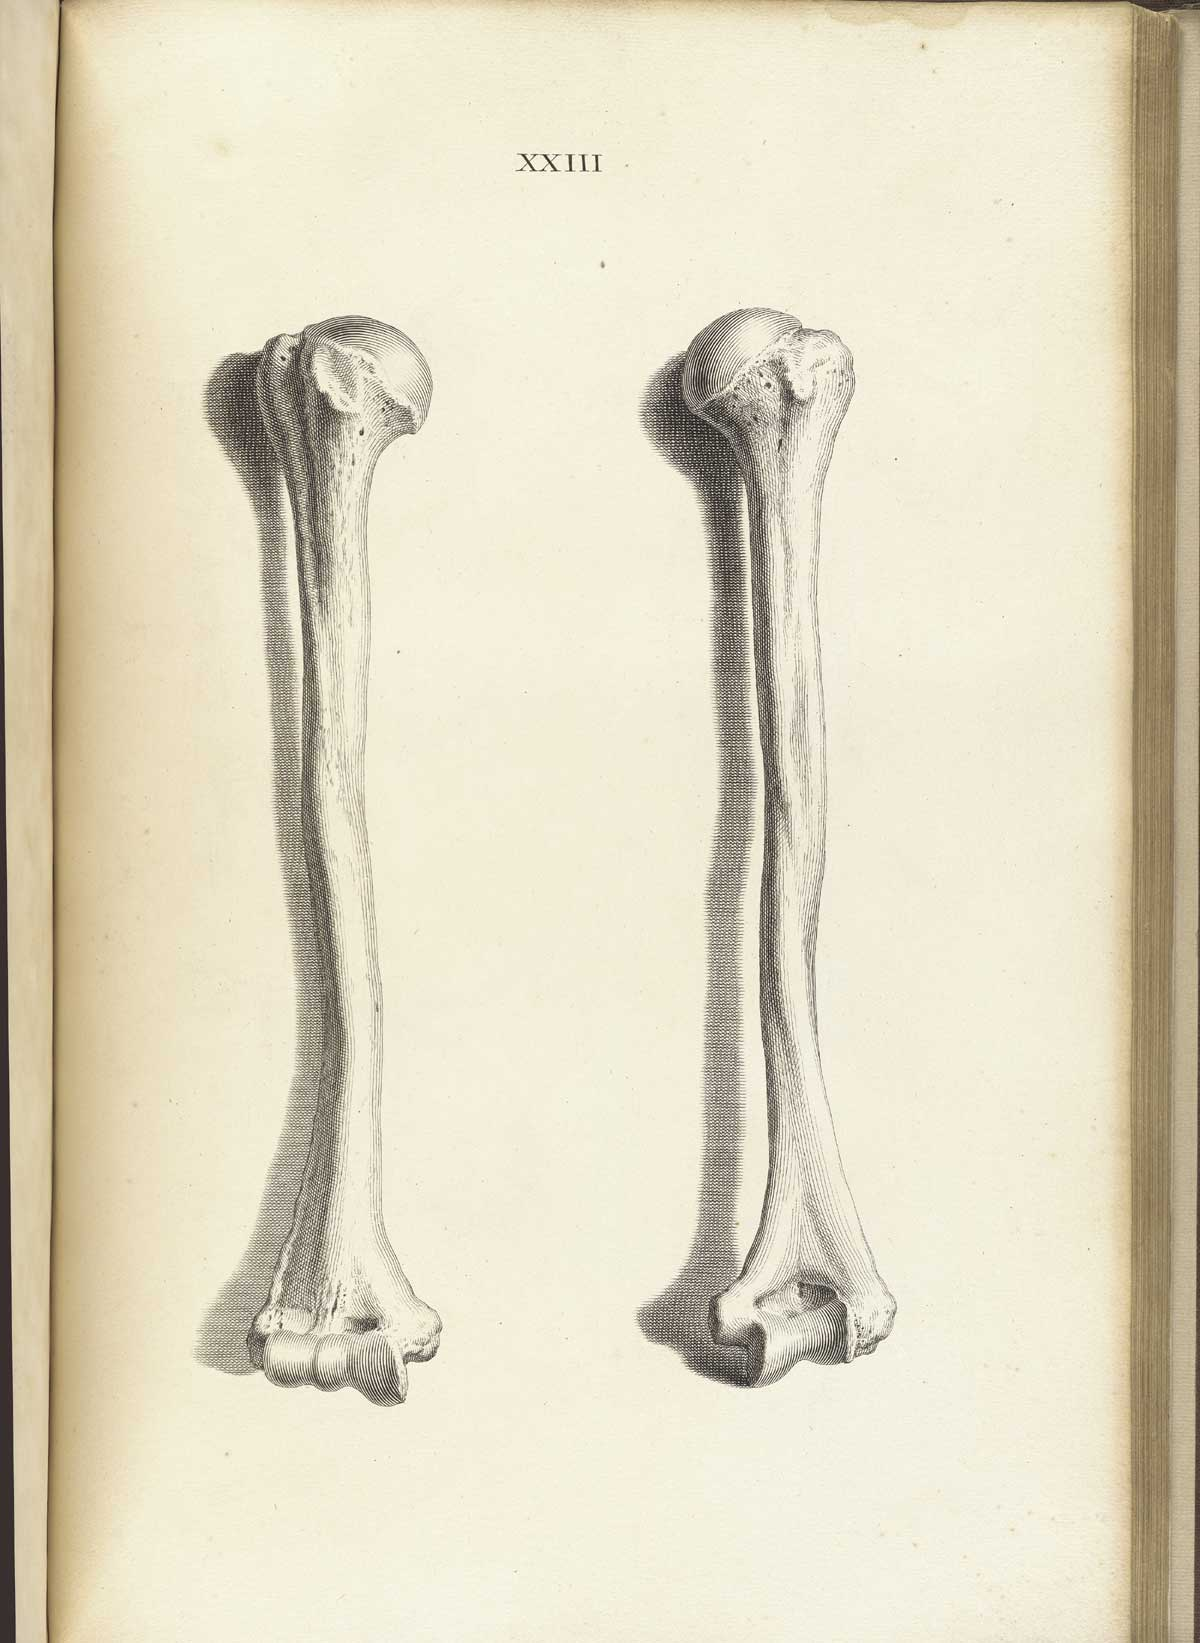 ostrich skeleton diagram boat anatomy historical anatomies on the web william cheselden home engraving of two humerus bones standing vertically side by showing anterior and posterior